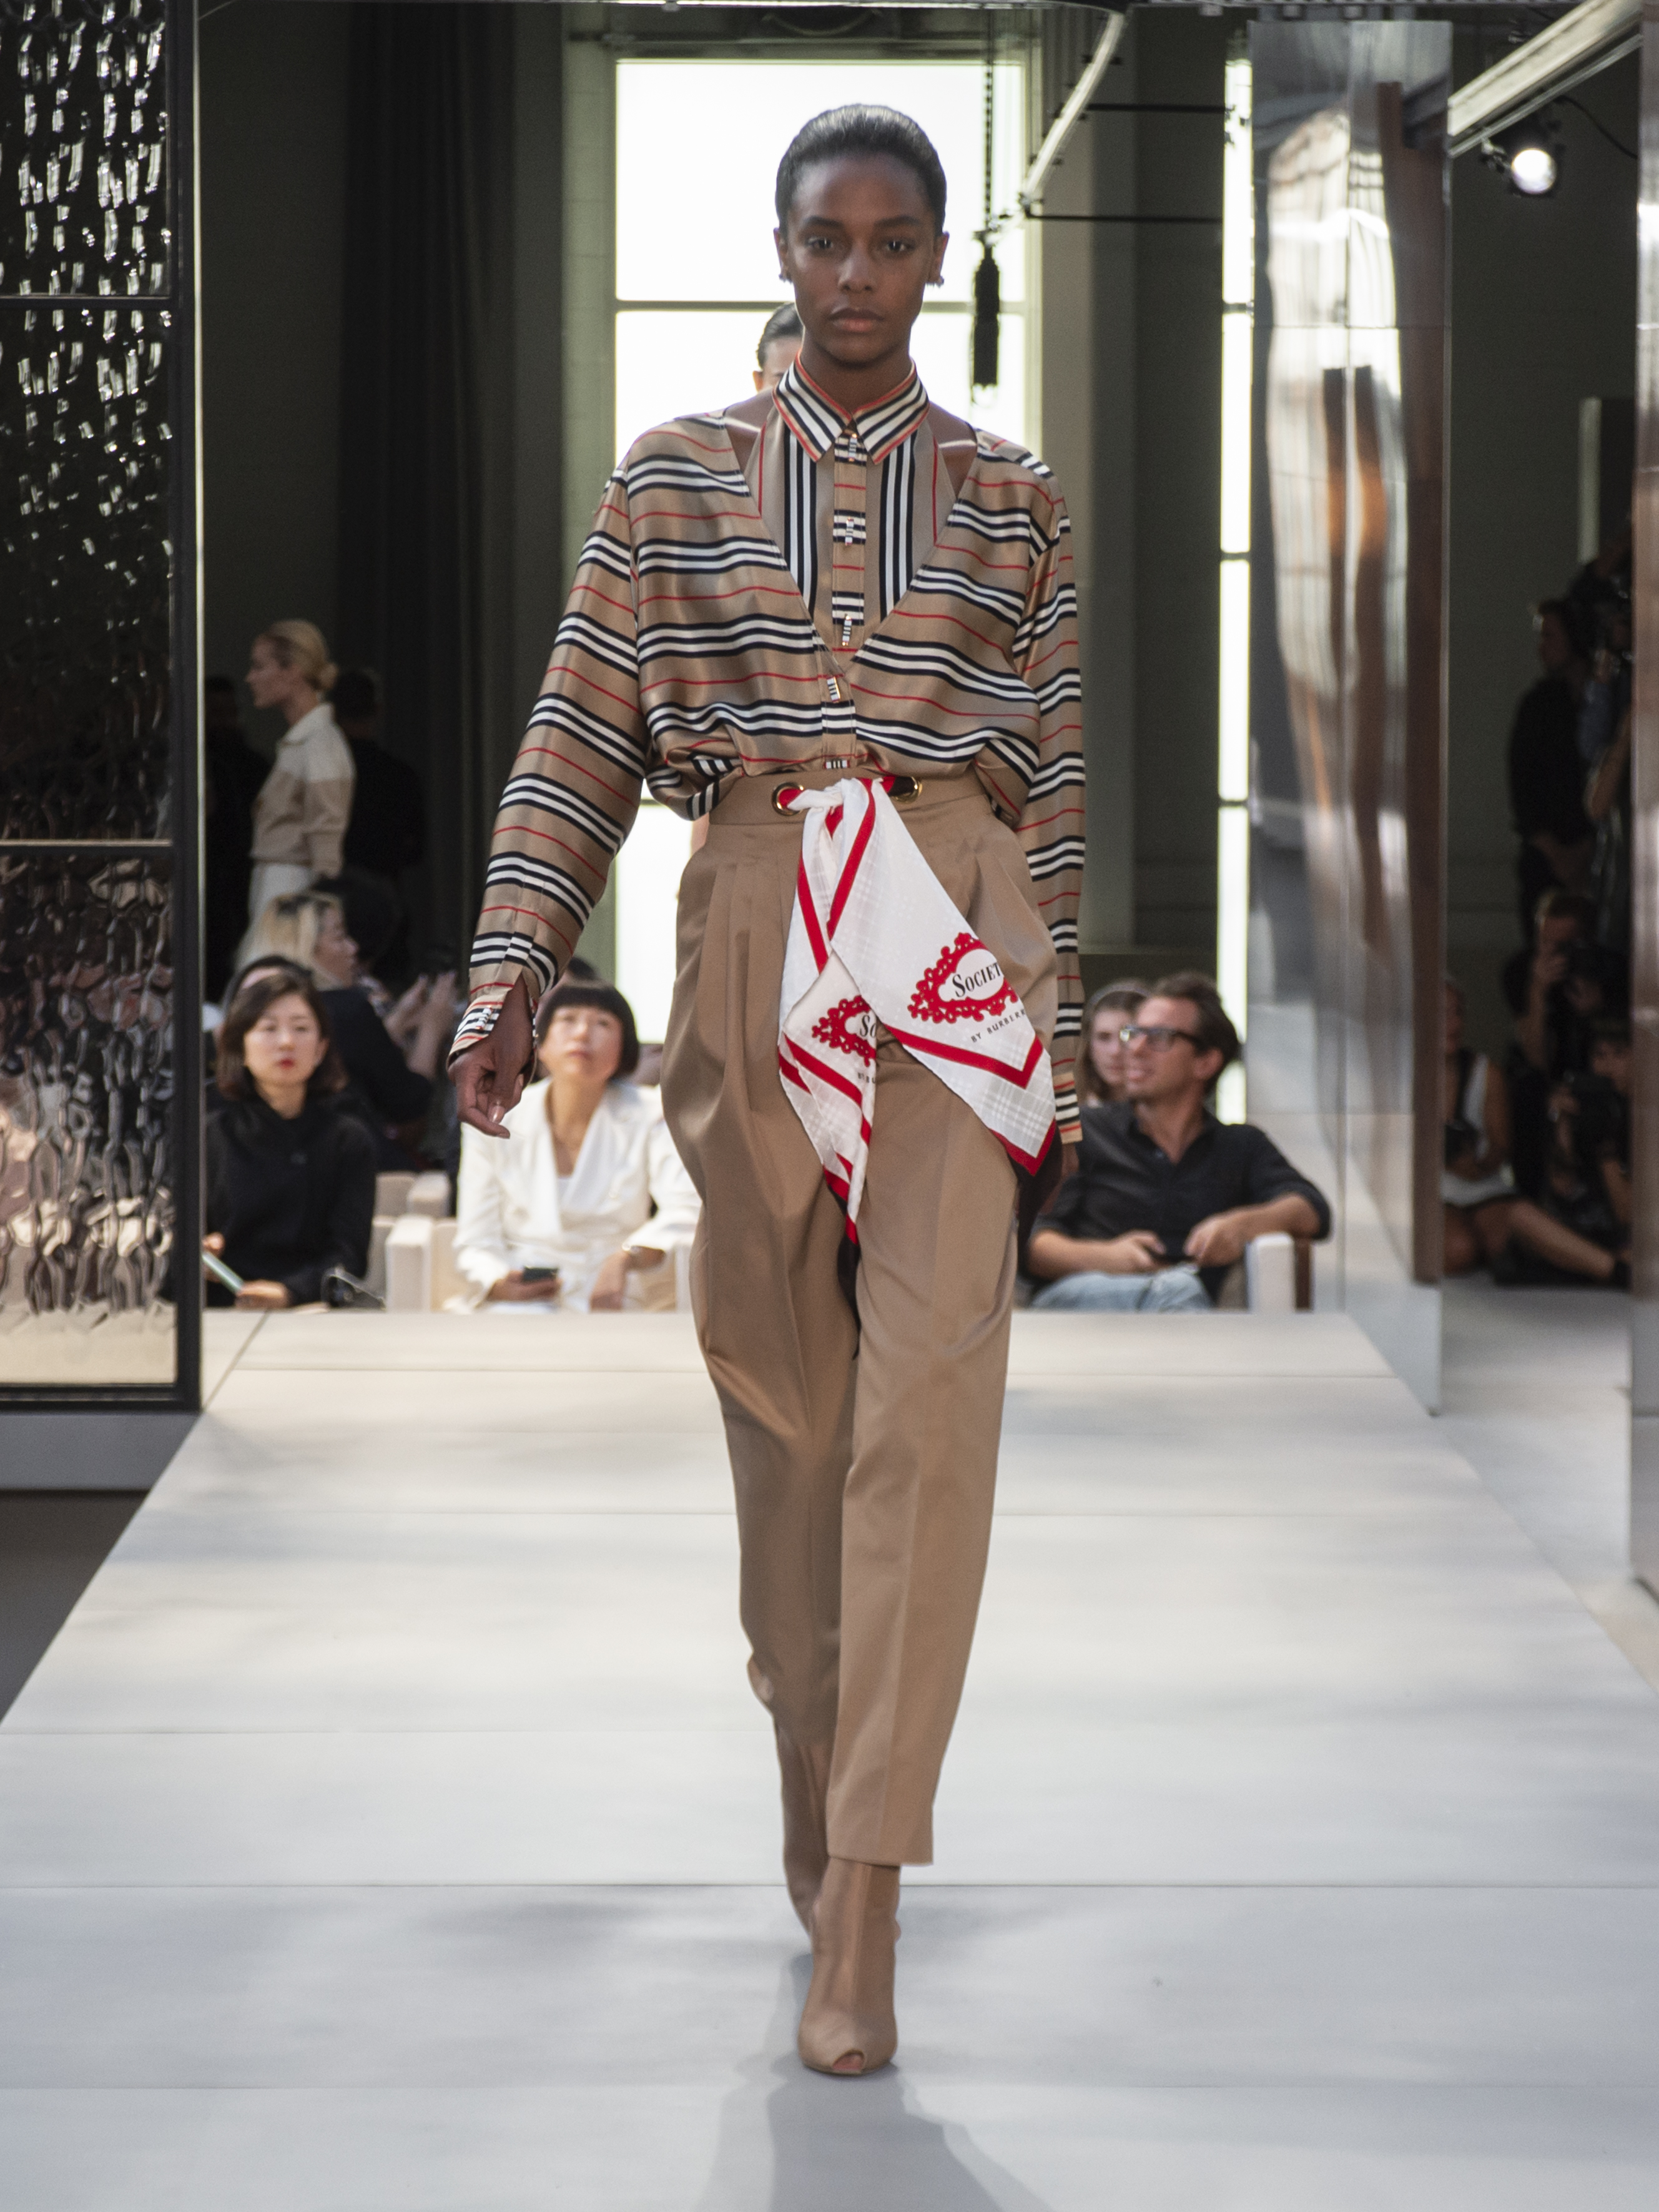 Riccardo Tisci reintroduced the check in pinstripes on a variation of looks in the SS19 collection